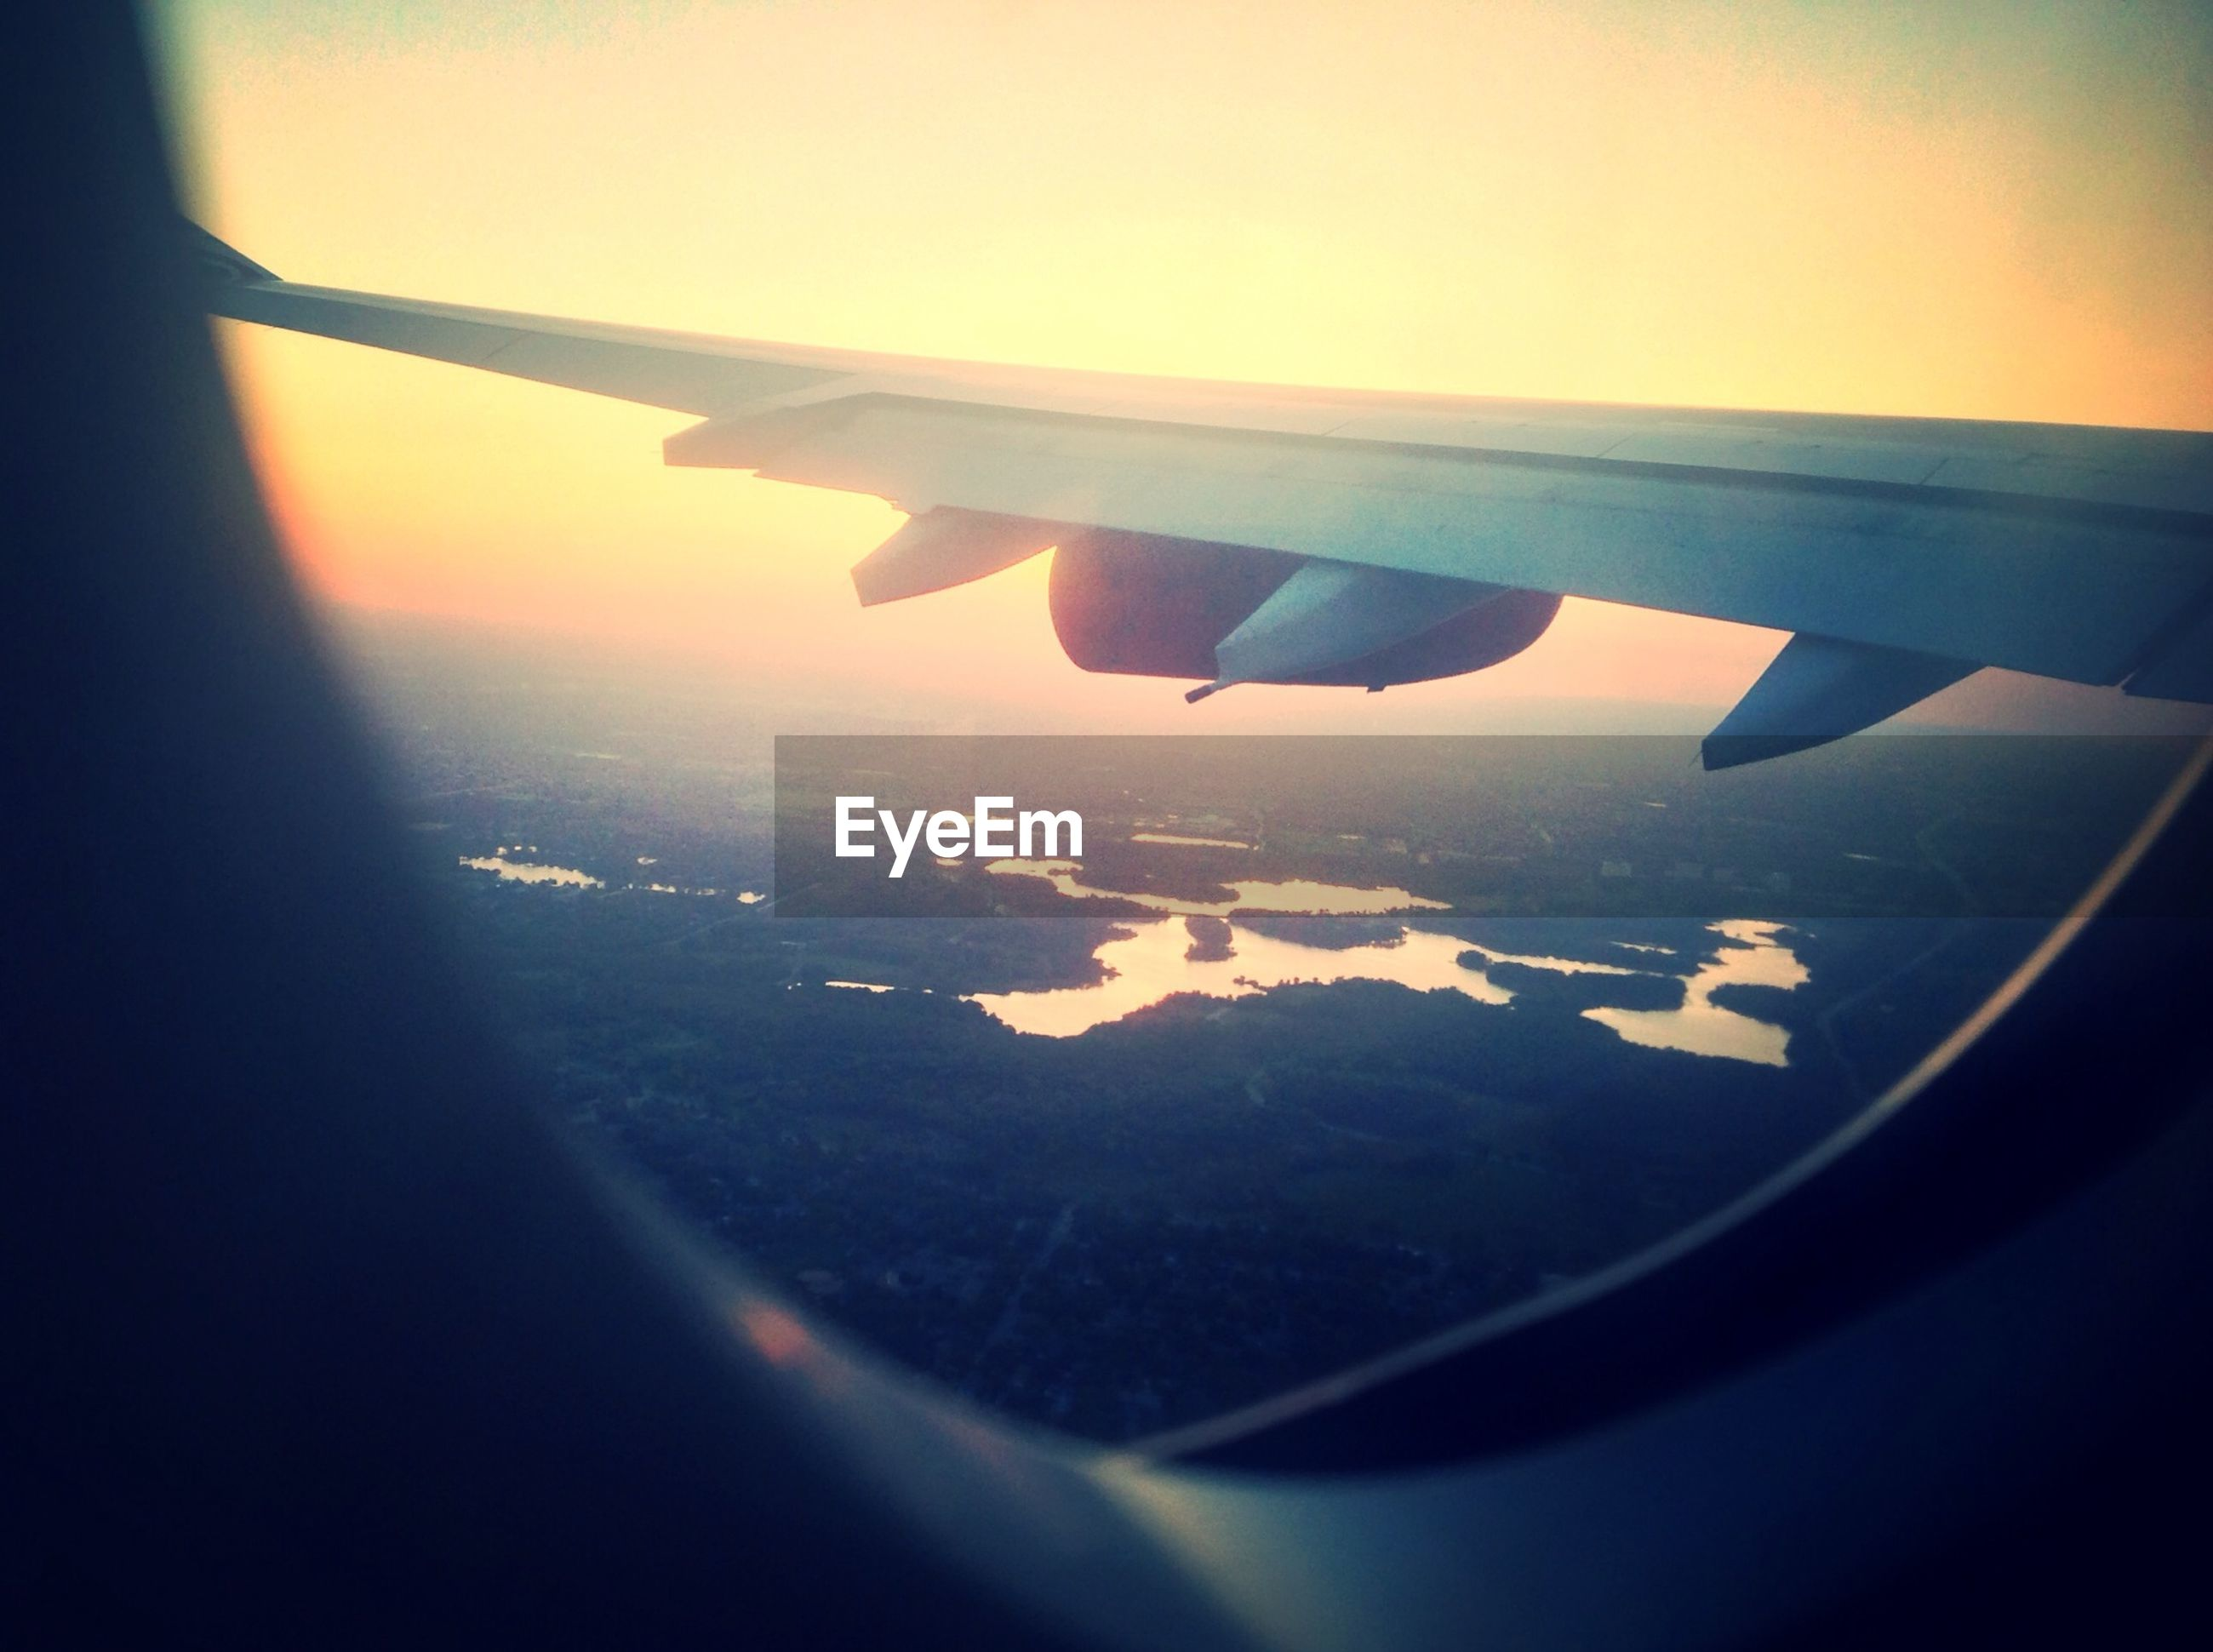 airplane, transportation, flying, air vehicle, aircraft wing, aerial view, mode of transport, vehicle interior, landscape, part of, window, cropped, sky, scenics, travel, mid-air, sunset, beauty in nature, transparent, glass - material